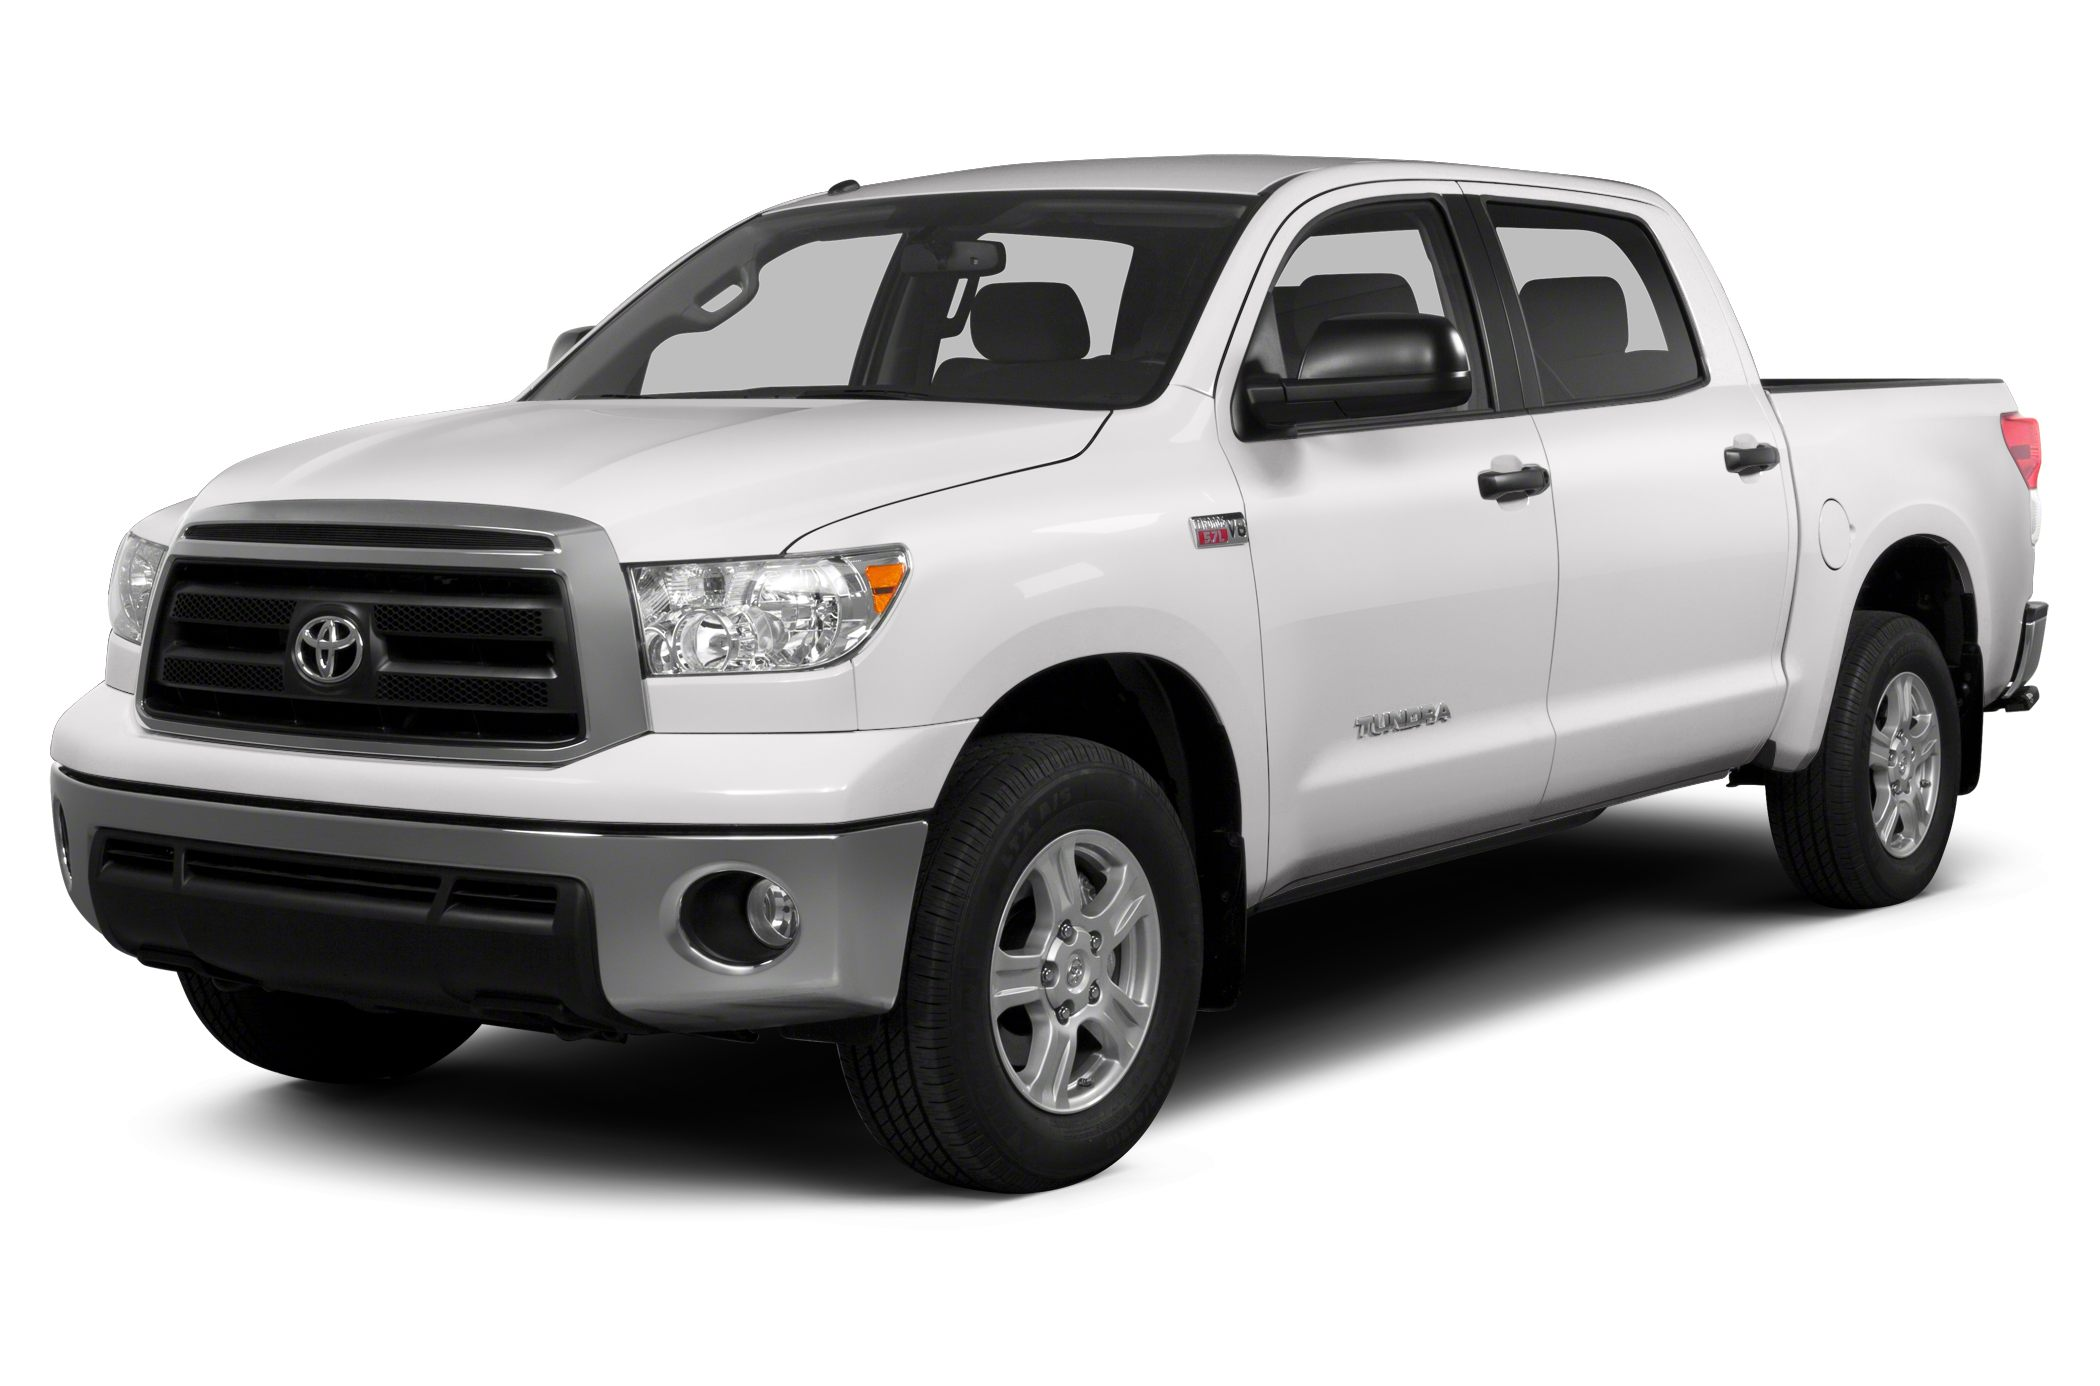 2013 Toyota Tundra Platinum Crew Cab Pickup for sale in Denver for $44,500 with 8,837 miles